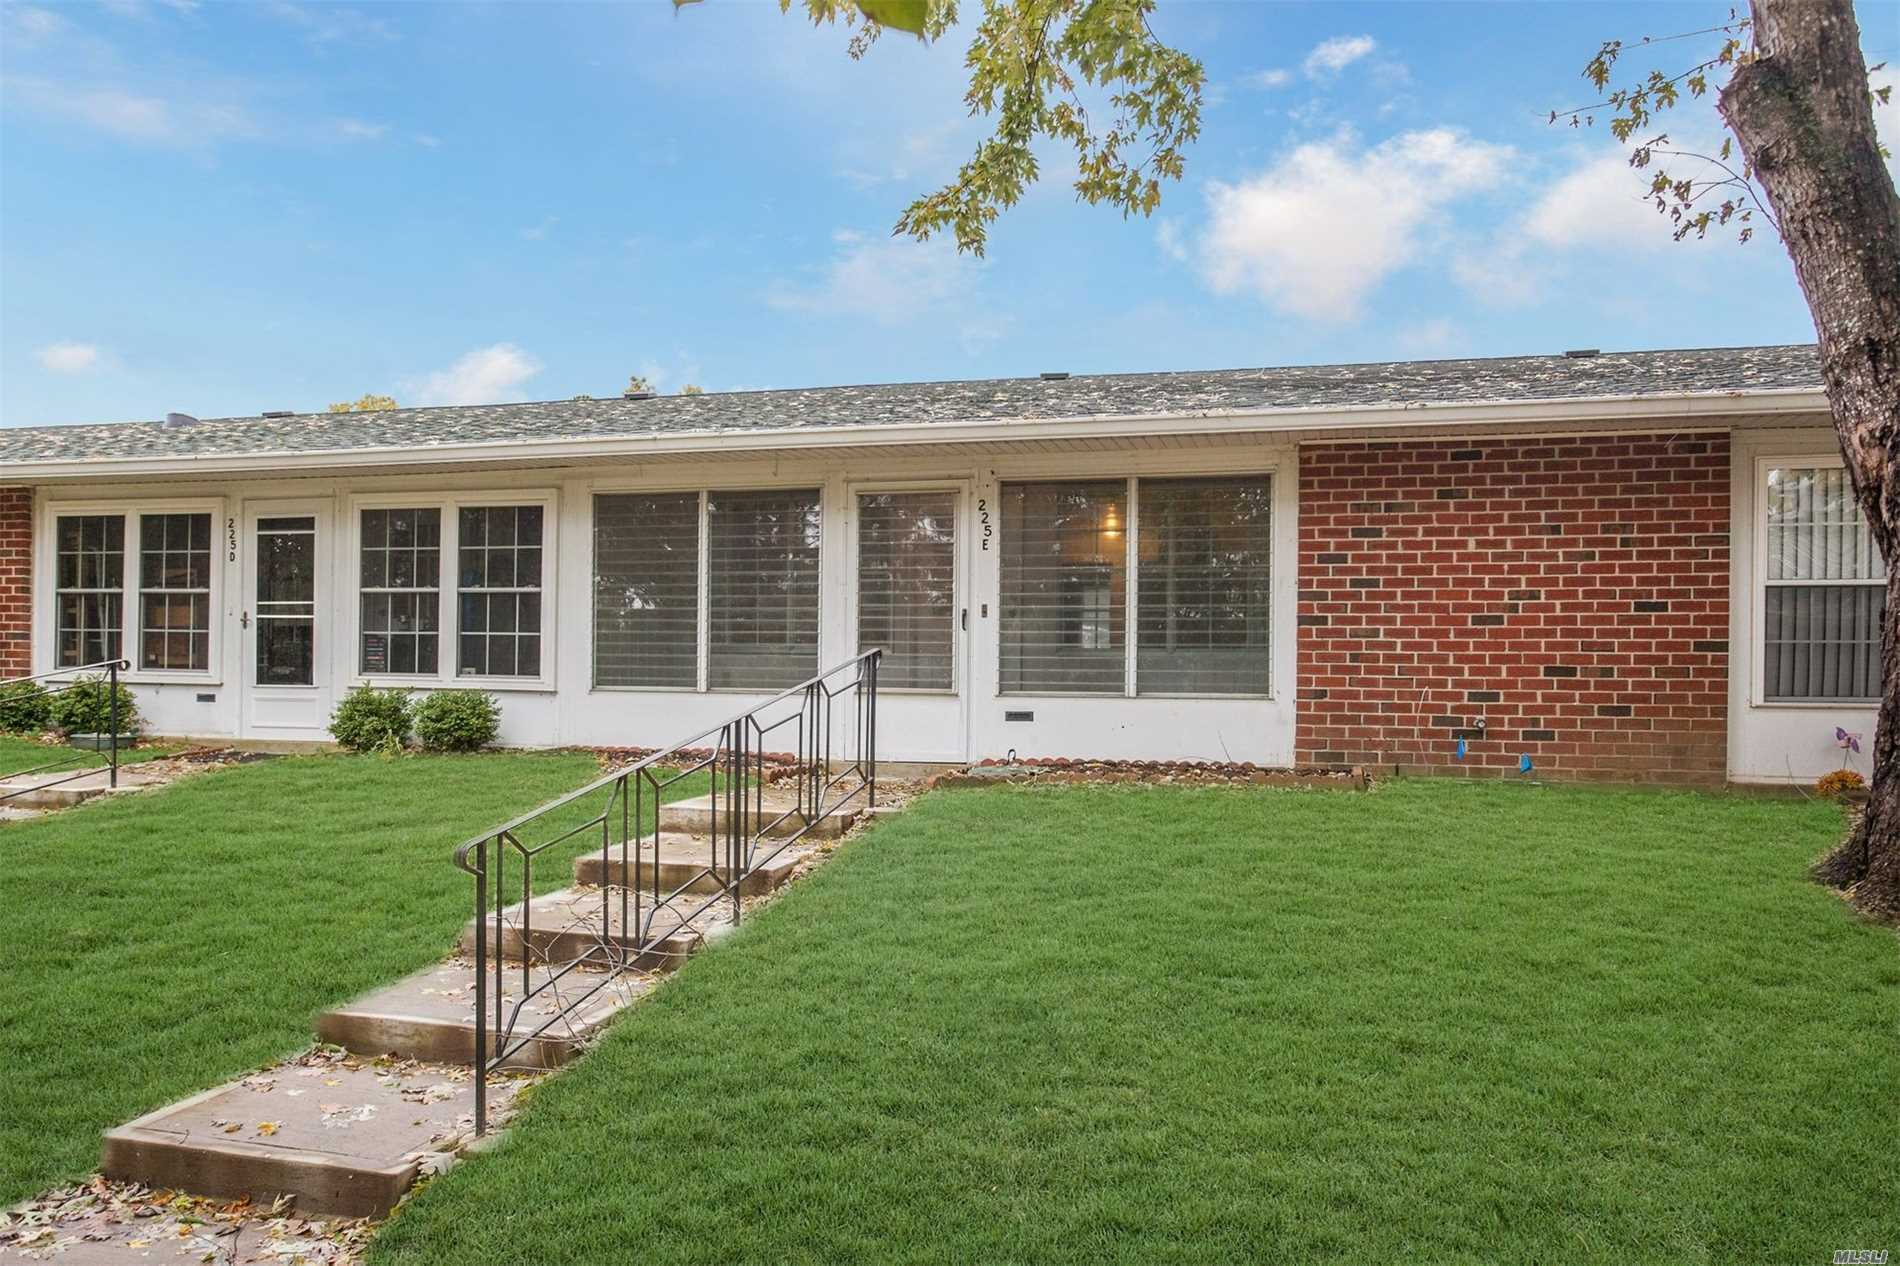 2 Bedrooms, Open Floor Plan,  Sun Room, Extra Parking Spaces All In 24 Hour Gated Security 55 And Better Community Offering Heated Outdoor Pool 9 Hold Golf, Bus Service, Club House, Snow Removal, Exterior Maintenance. Clubs Include Aerobics, Bingo, Bocce, Book Club, Bowling, Bridge, Ceramics, Golf, Horseshoe, Ping Pong, Quilting, Shuffleboard, Social Club, Tennis, Wood Working And More!